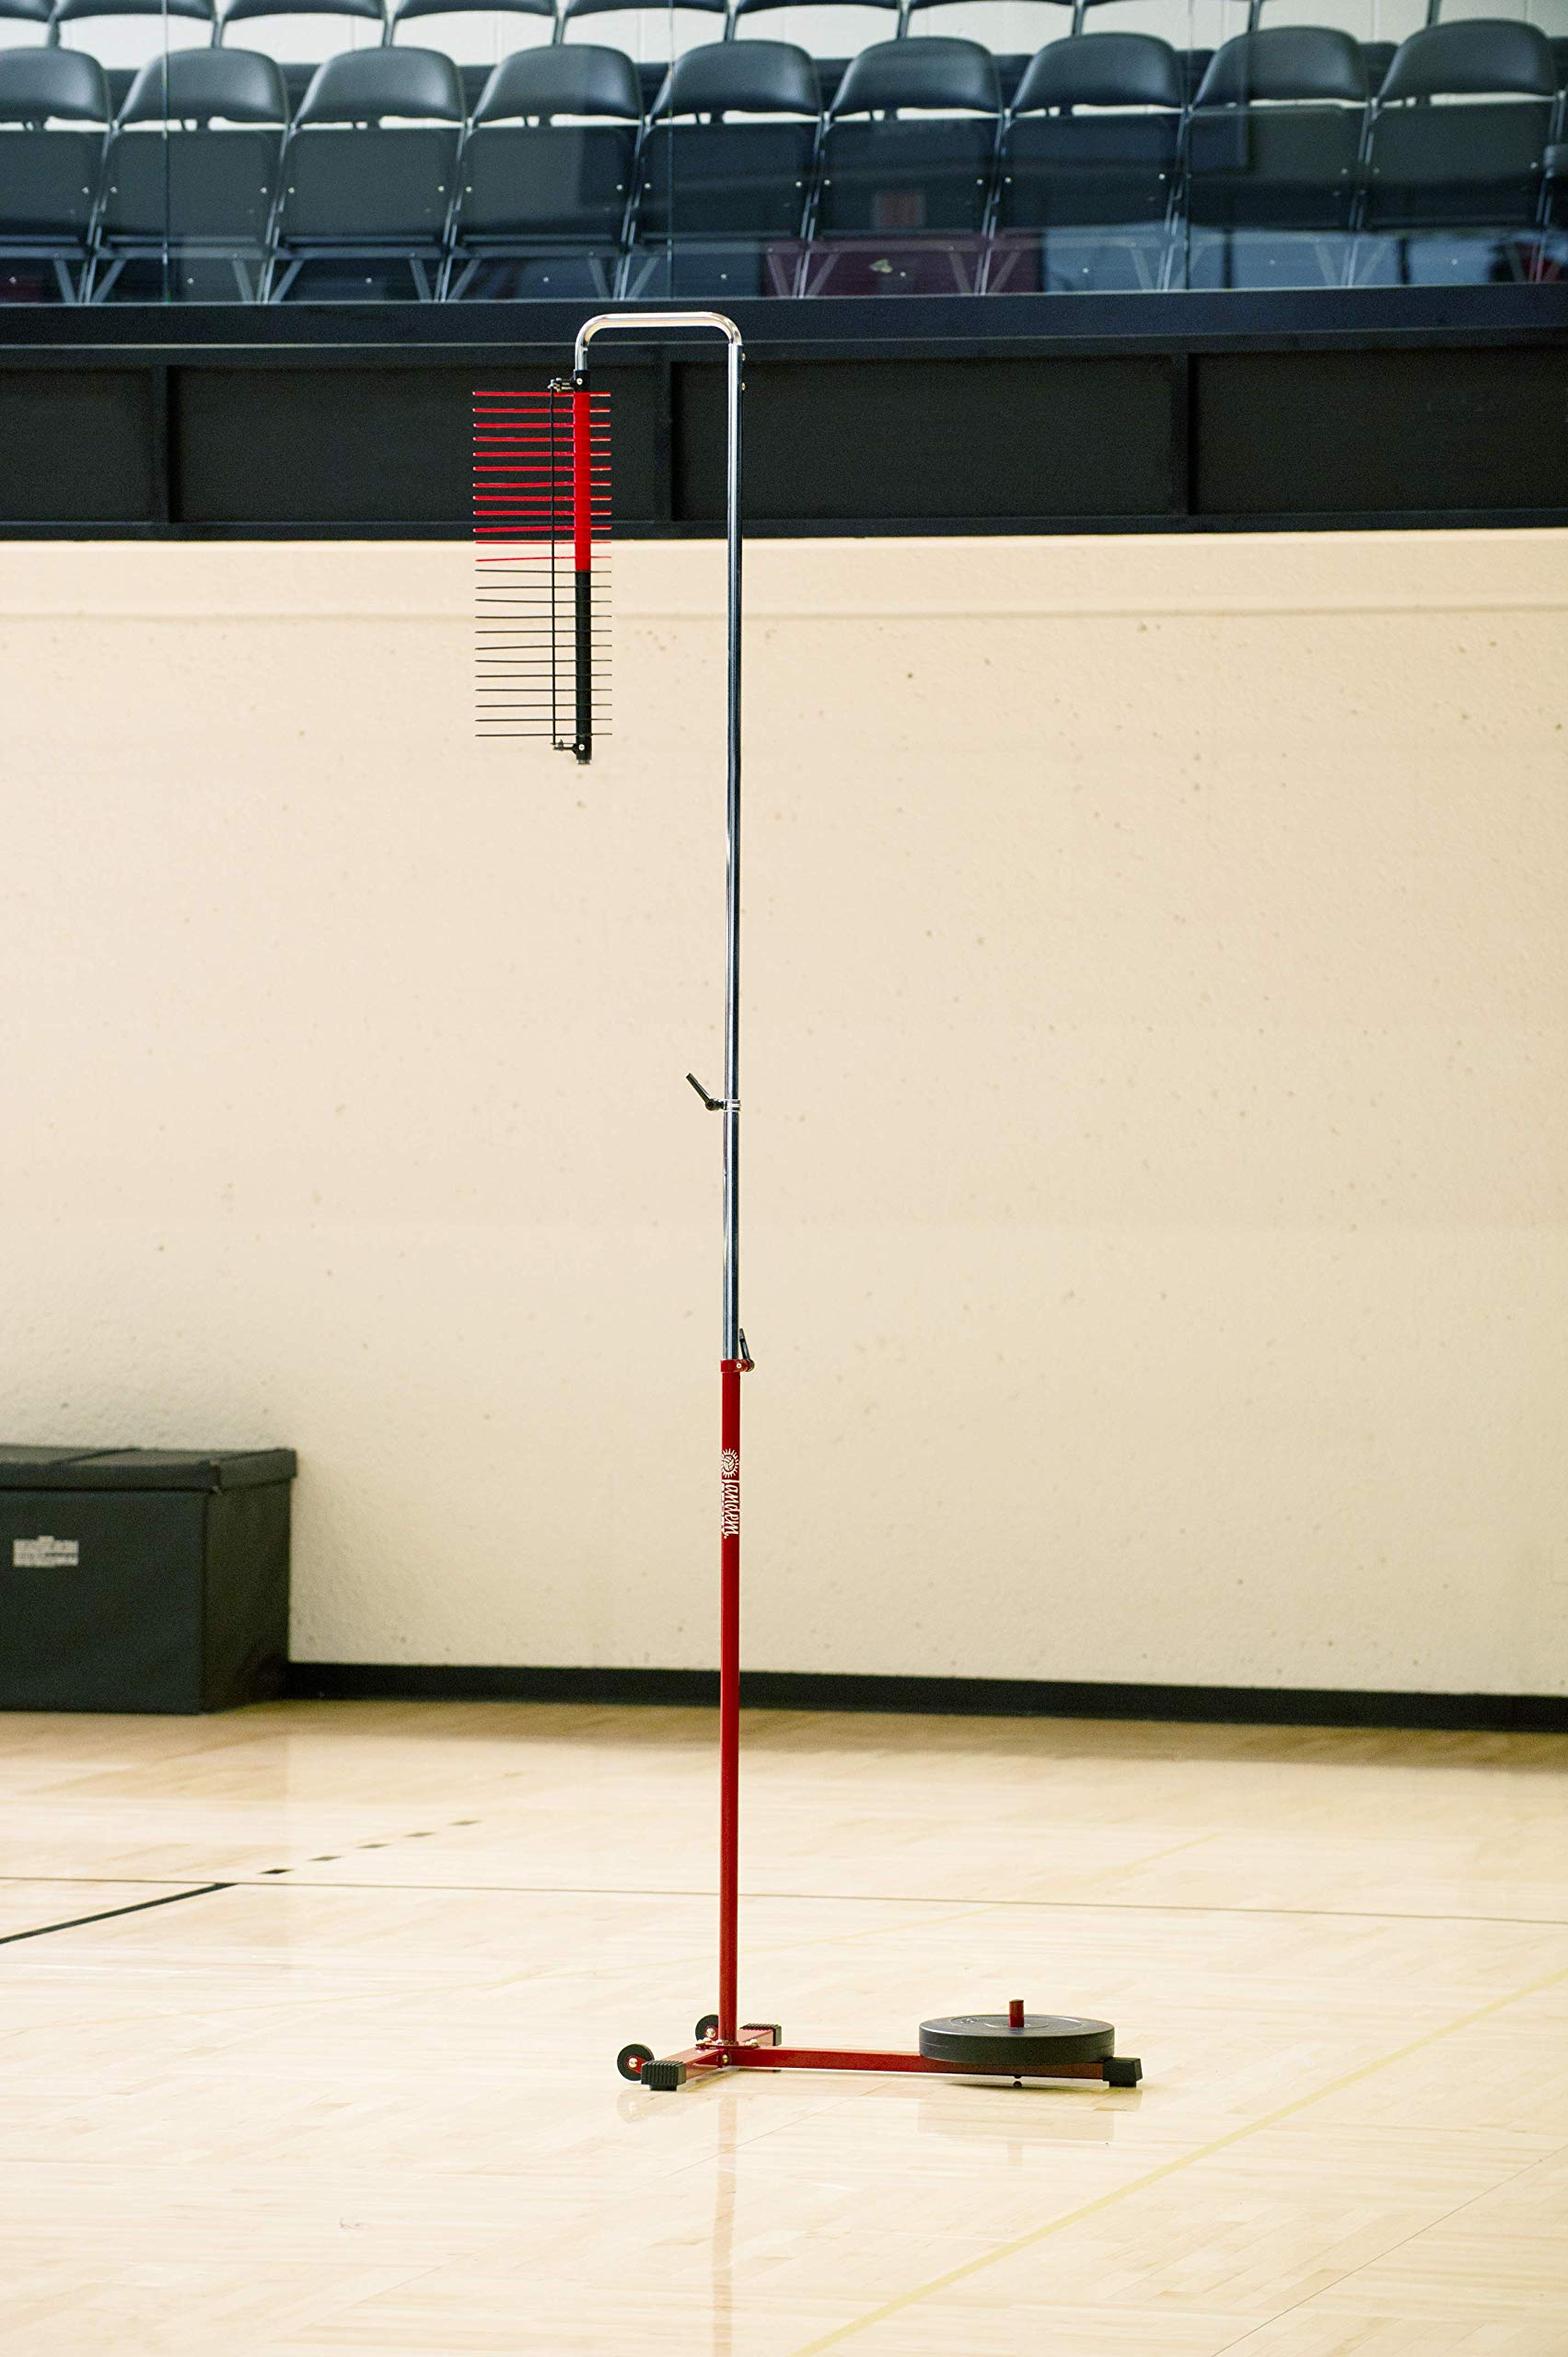 Tandem Vertical Challenger - Stand-Alone Jump Measurement Tester Solo Volleyball Training Aid by Tandem Sport